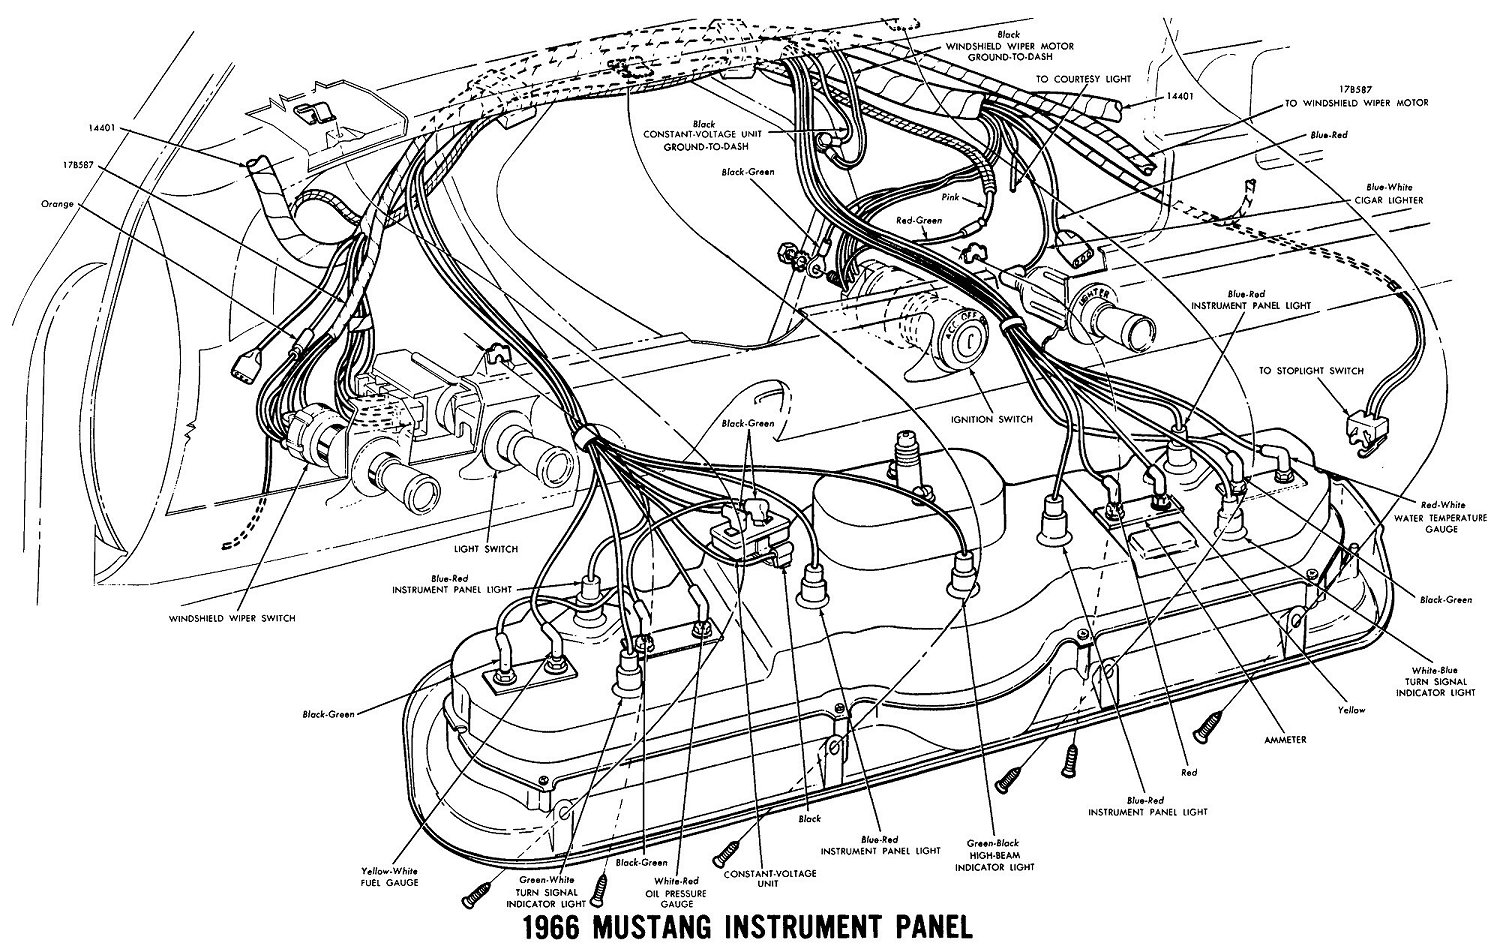 1965 mustang ignition switch wiring diagram 1965 66 mustang wiring diagrams 66 wiring diagrams on 1965 mustang ignition switch wiring diagram